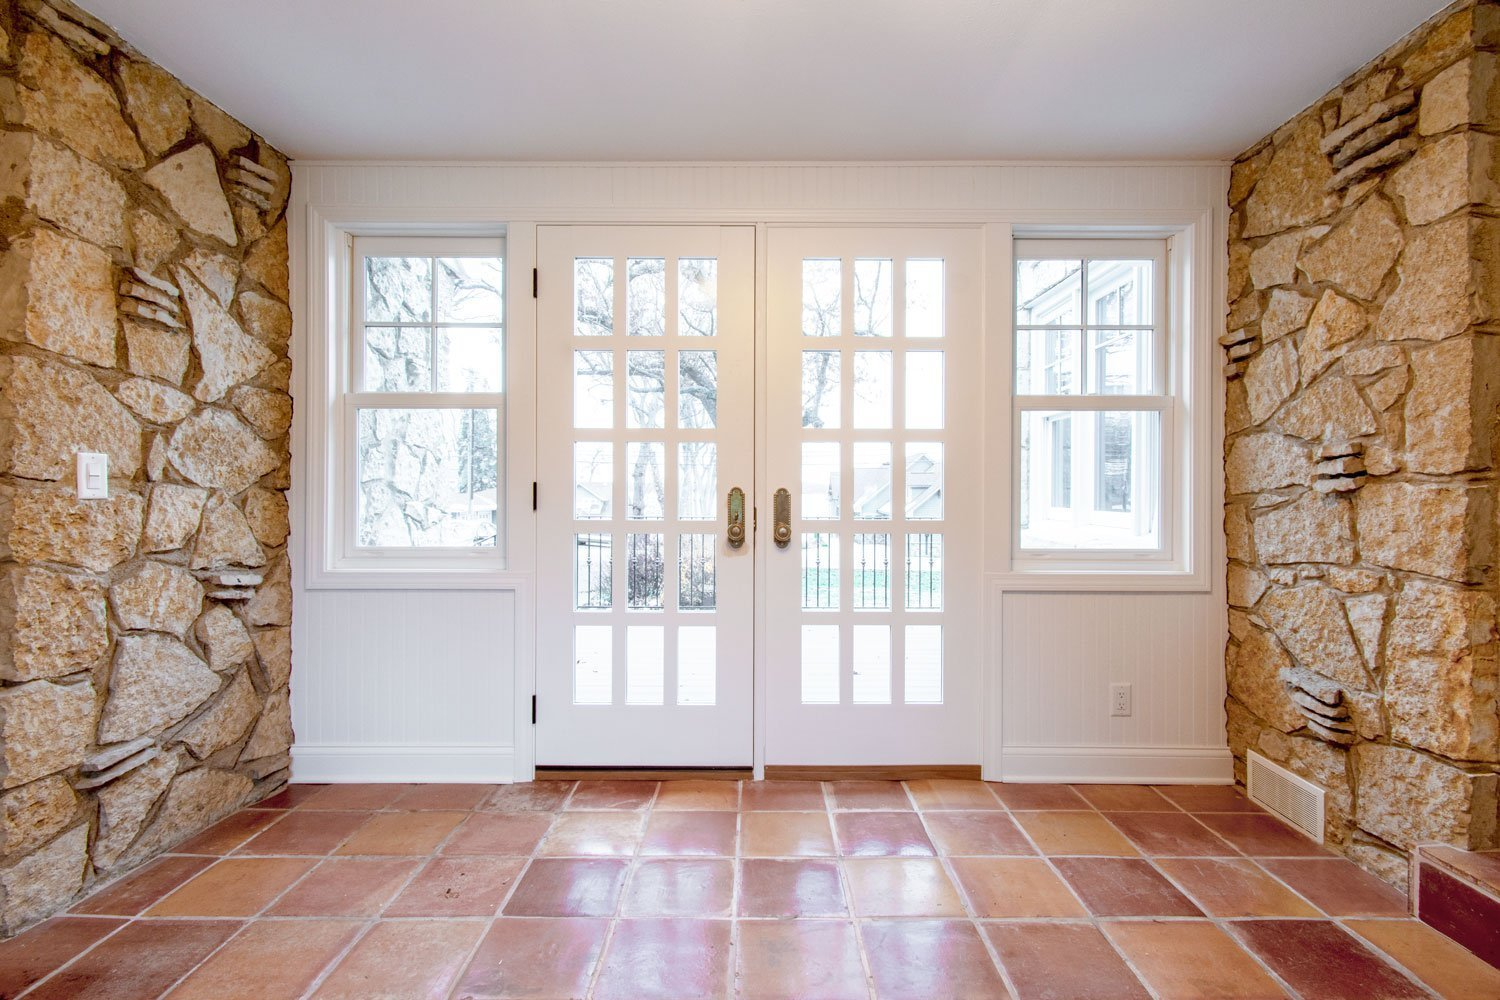 Delafield Breezeway double doors with tile floor and lannon stone walls